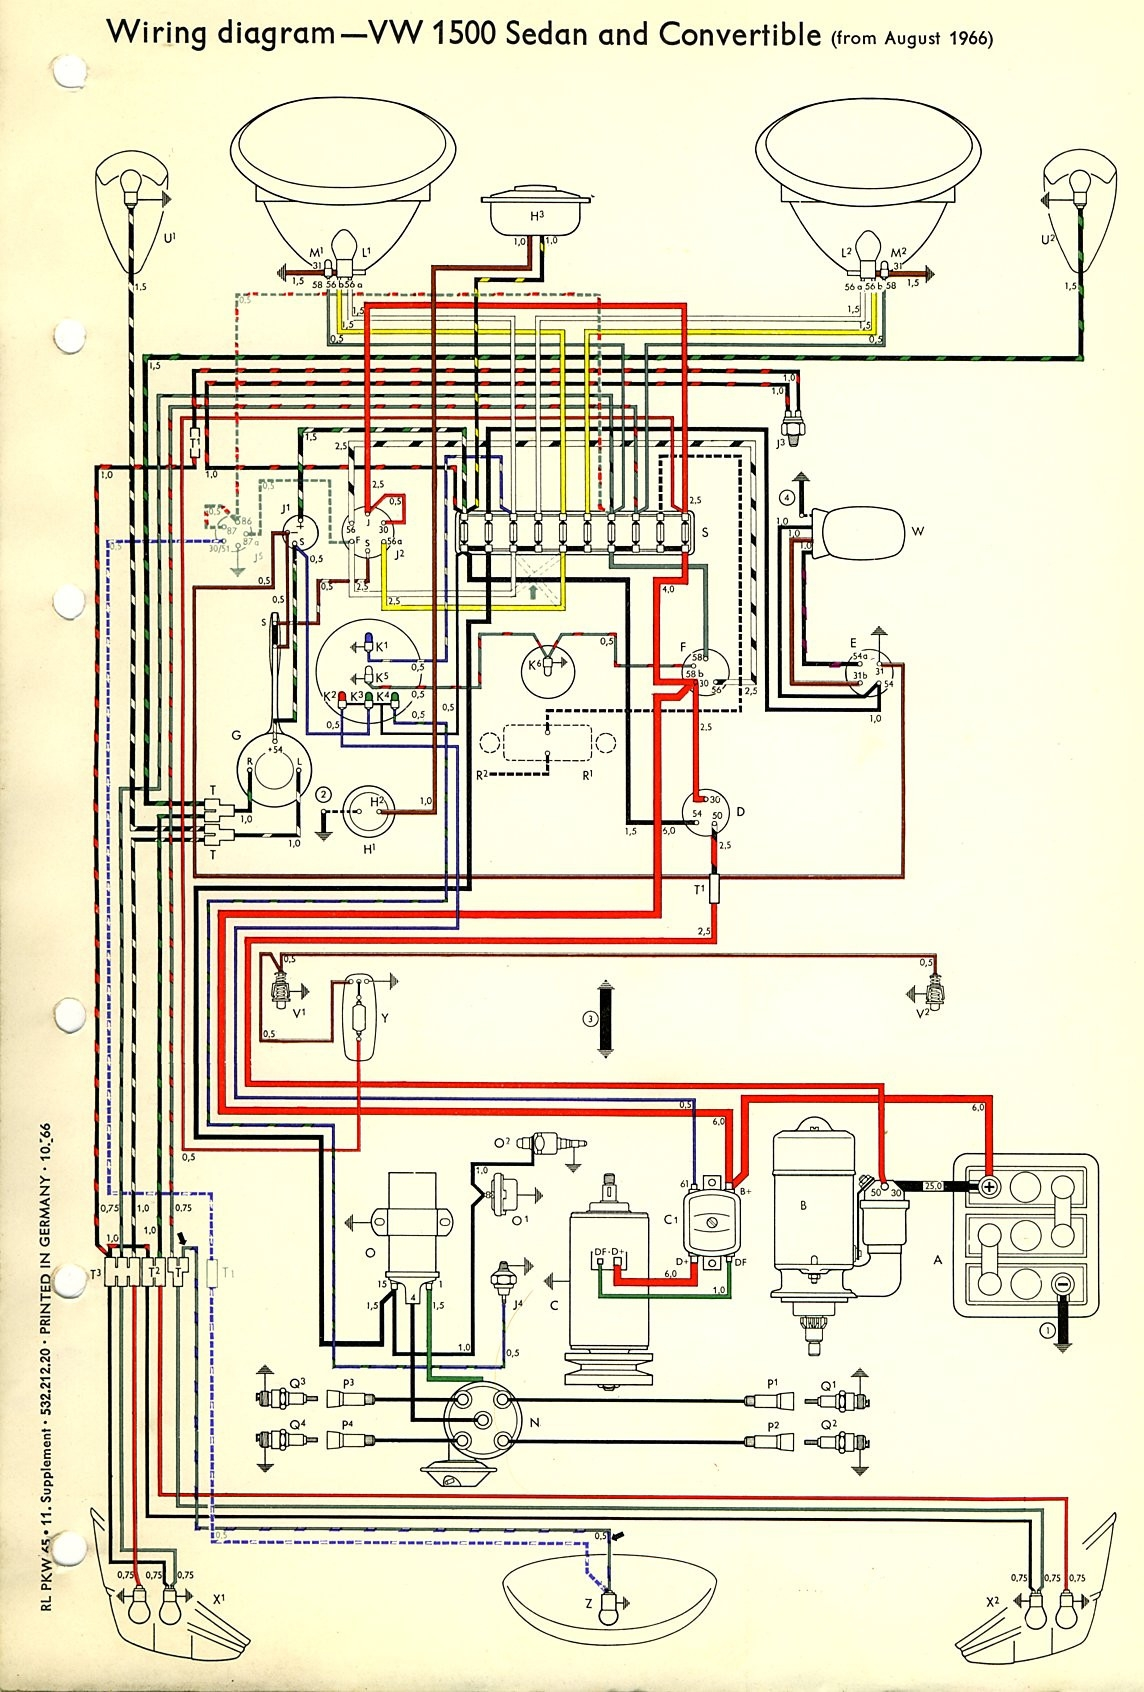 2001 Vw Beetle Wiring Diagram